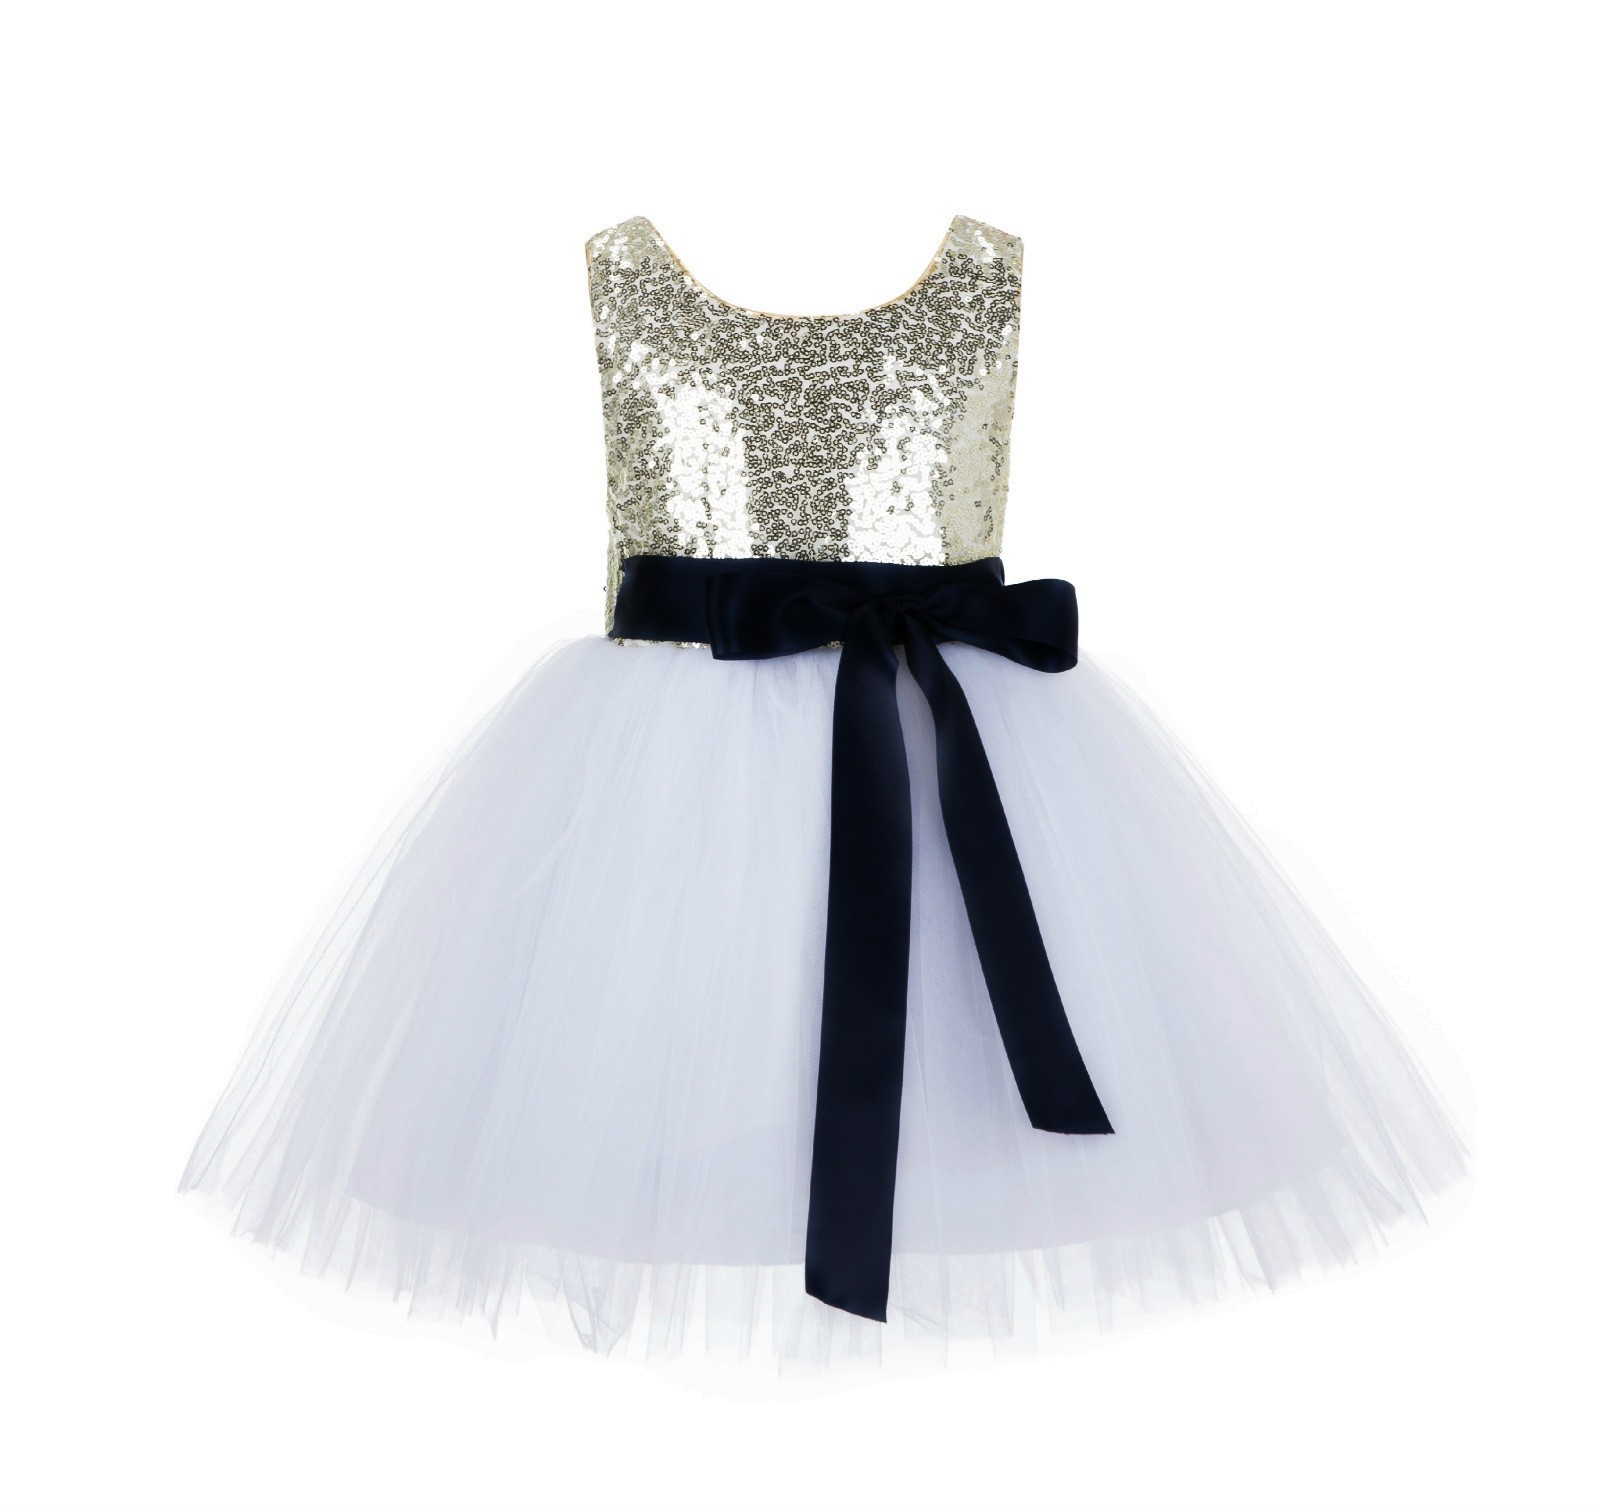 Gold/White/Black Glitter Sequin Tulle Flower Girl Dress Recital Ceremony 123S